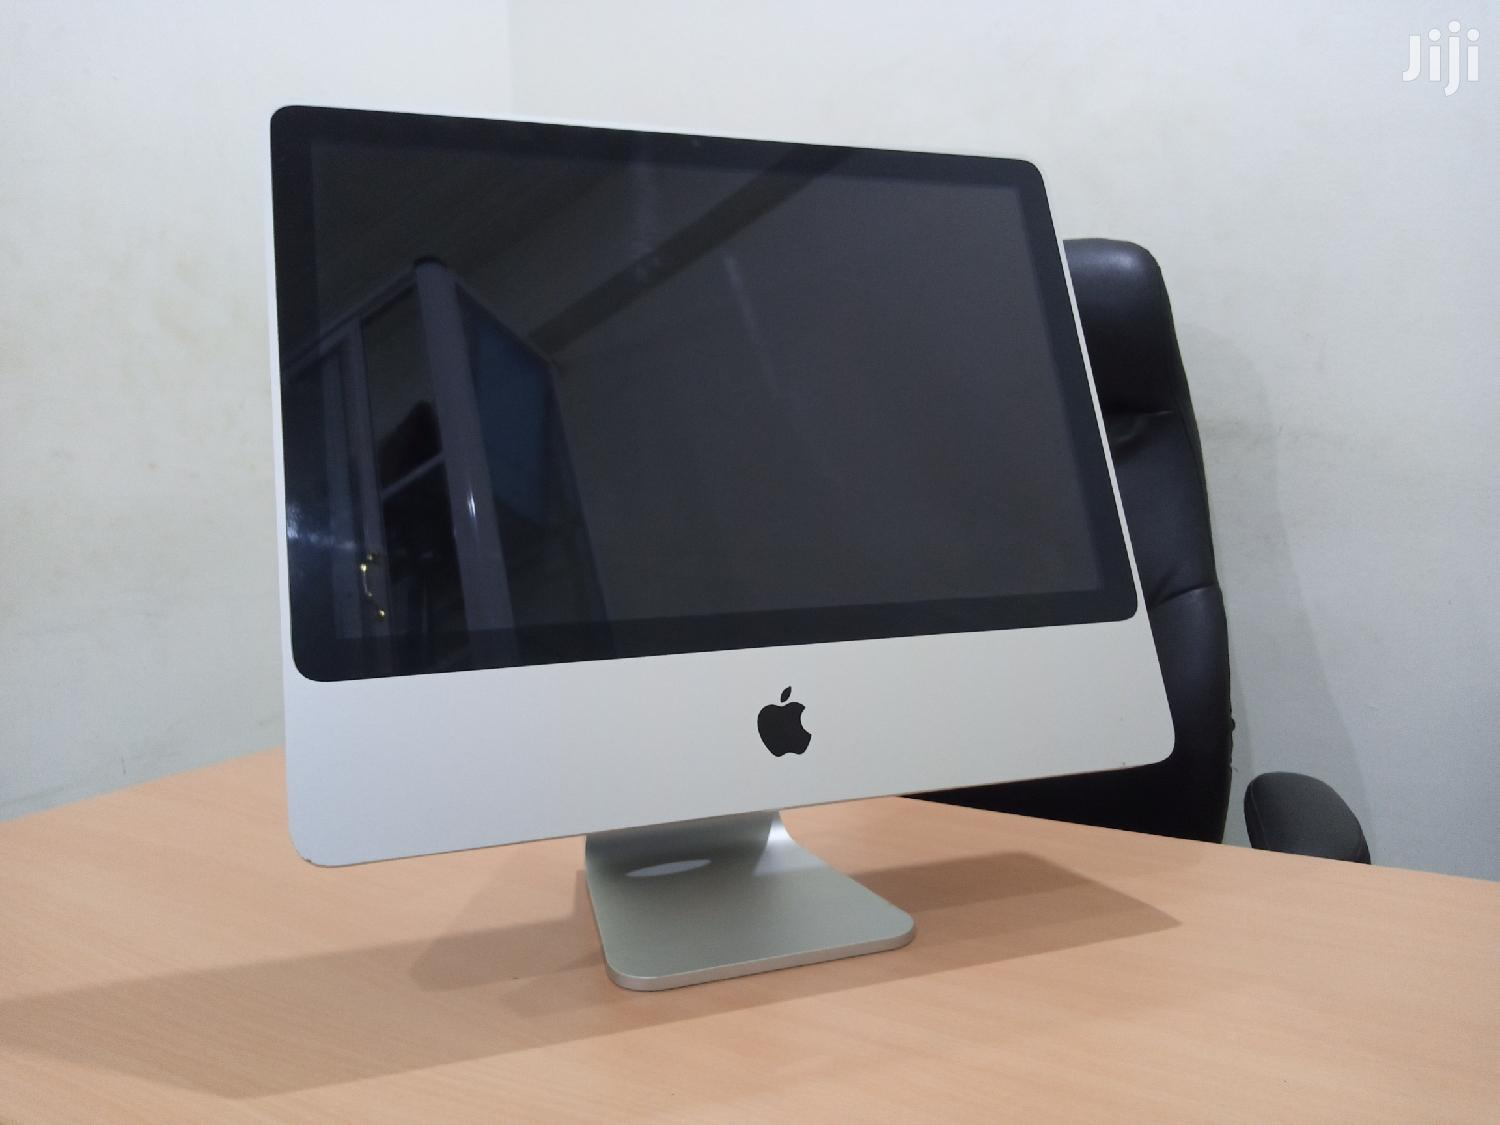 Desktop Computer Apple iMac 4GB Intel Core 2 Quad HDD 256GB | Laptops & Computers for sale in Darkuman, Greater Accra, Ghana